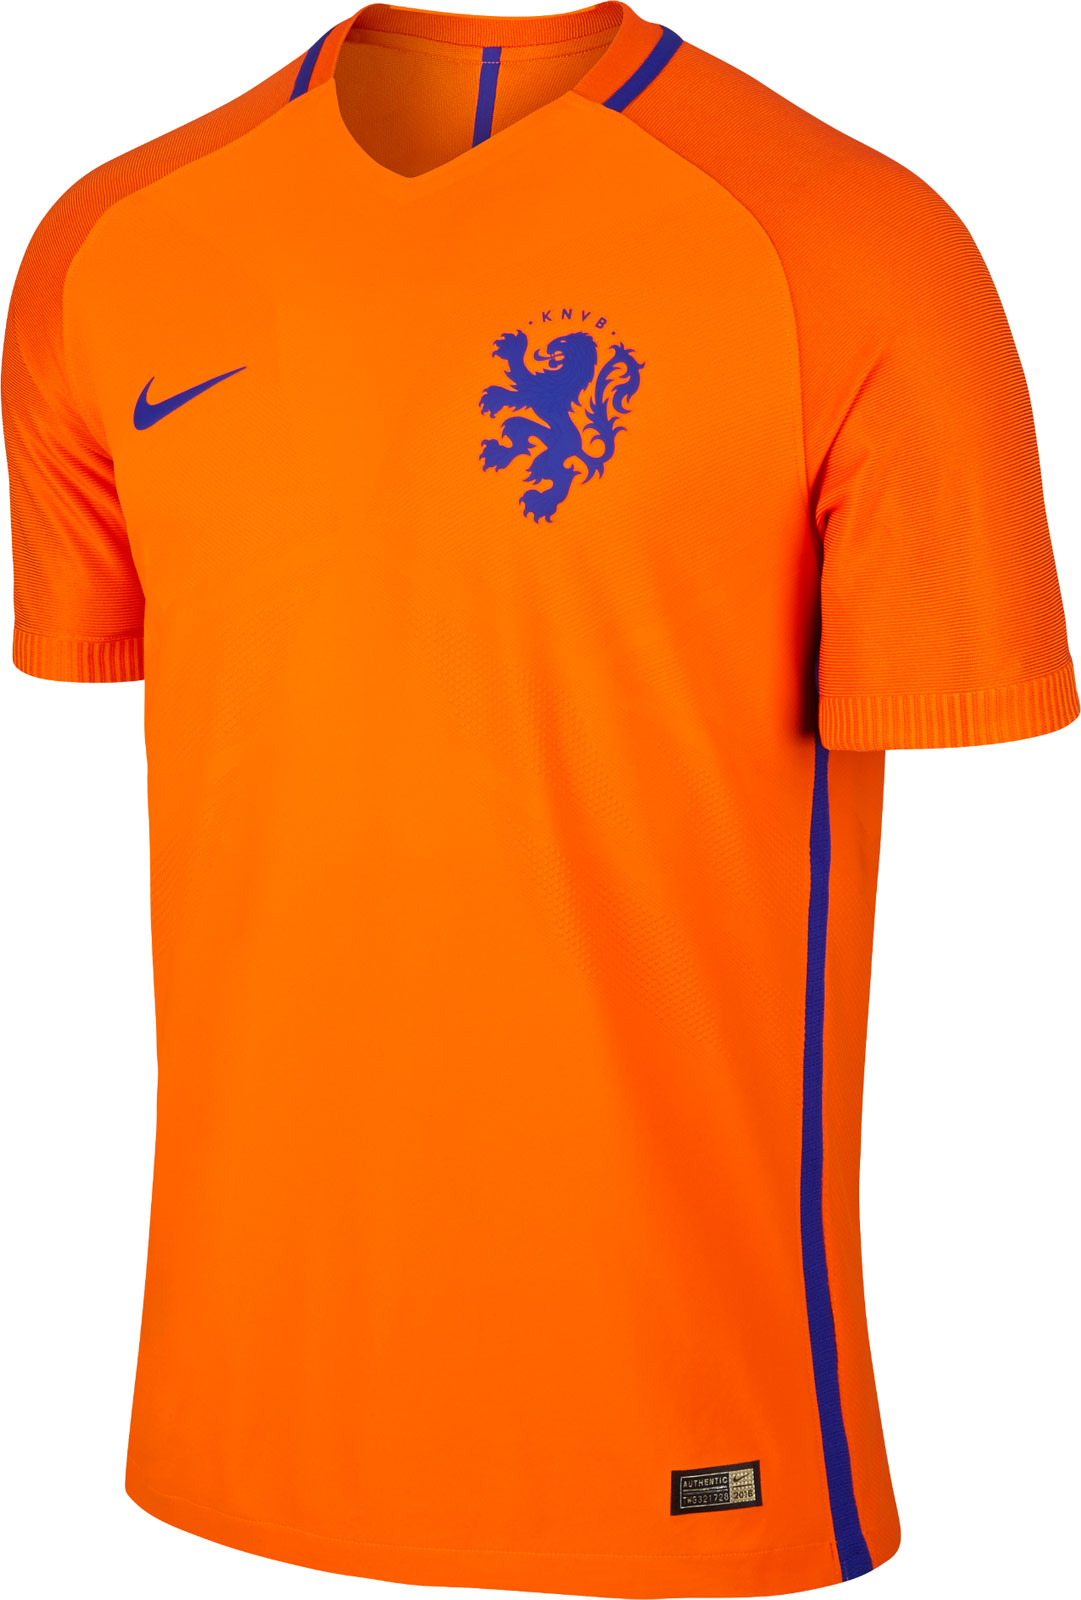 Netherlands 2016 Home Kit Released